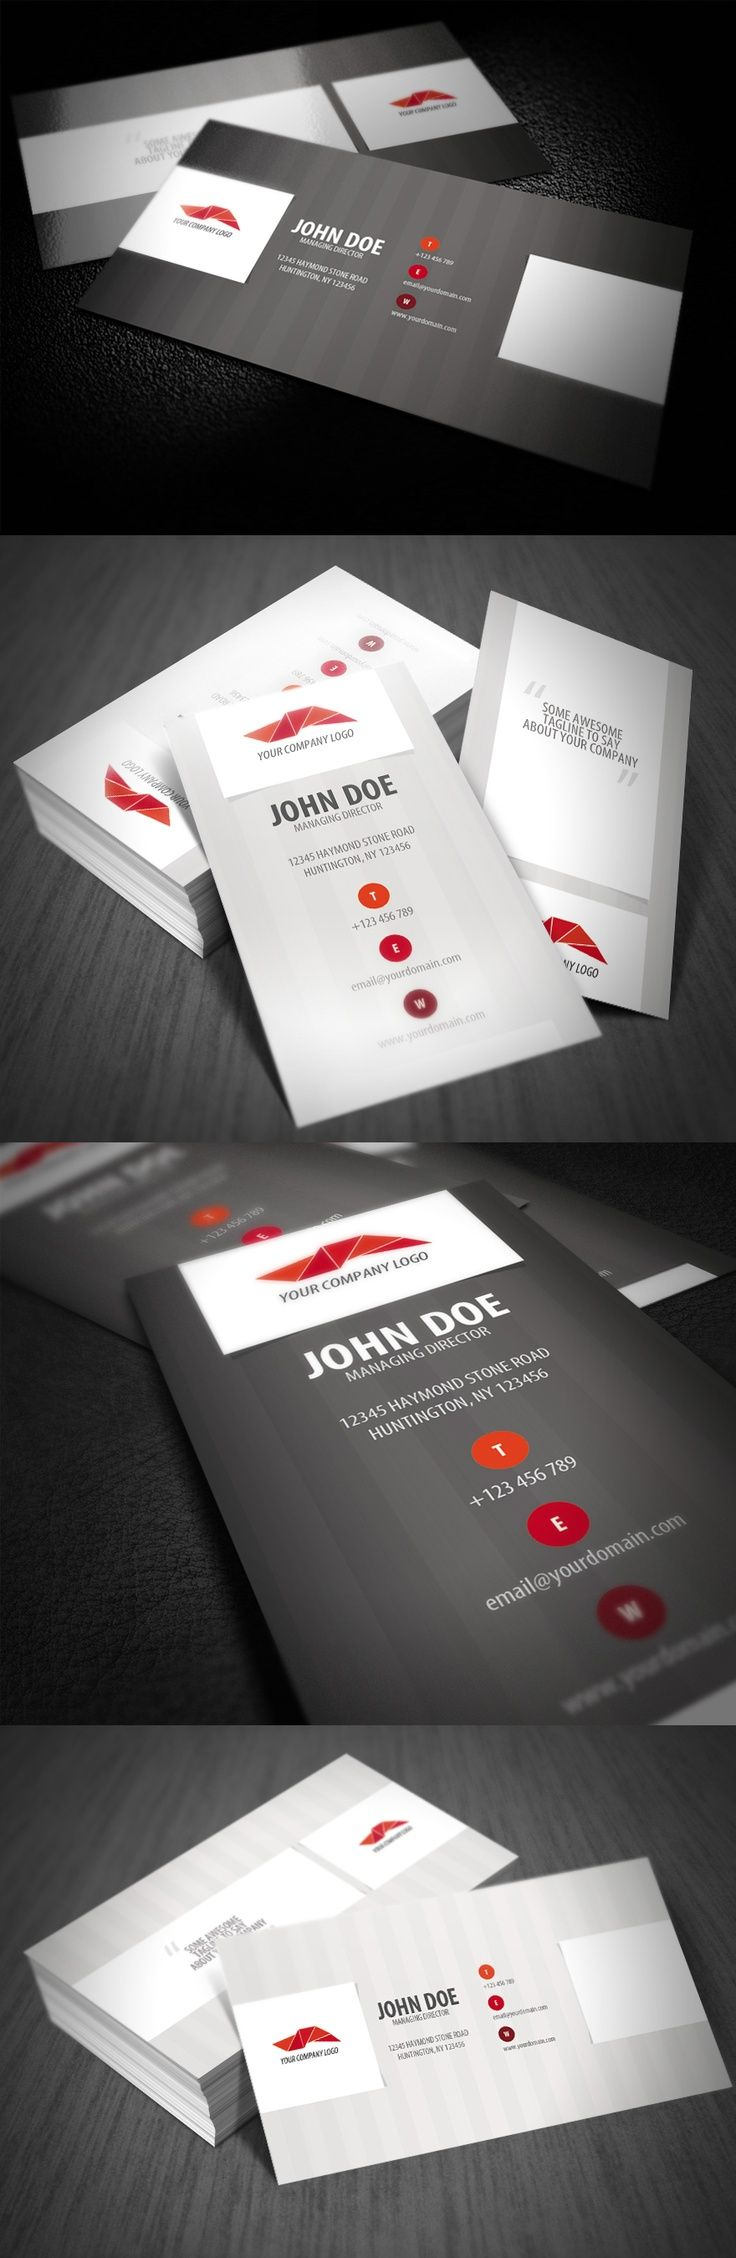 26 best business cards images on pinterest business cards httpyoutubewatchvodqkqrhi6qufeature unique business cardscorporate magicingreecefo Image collections